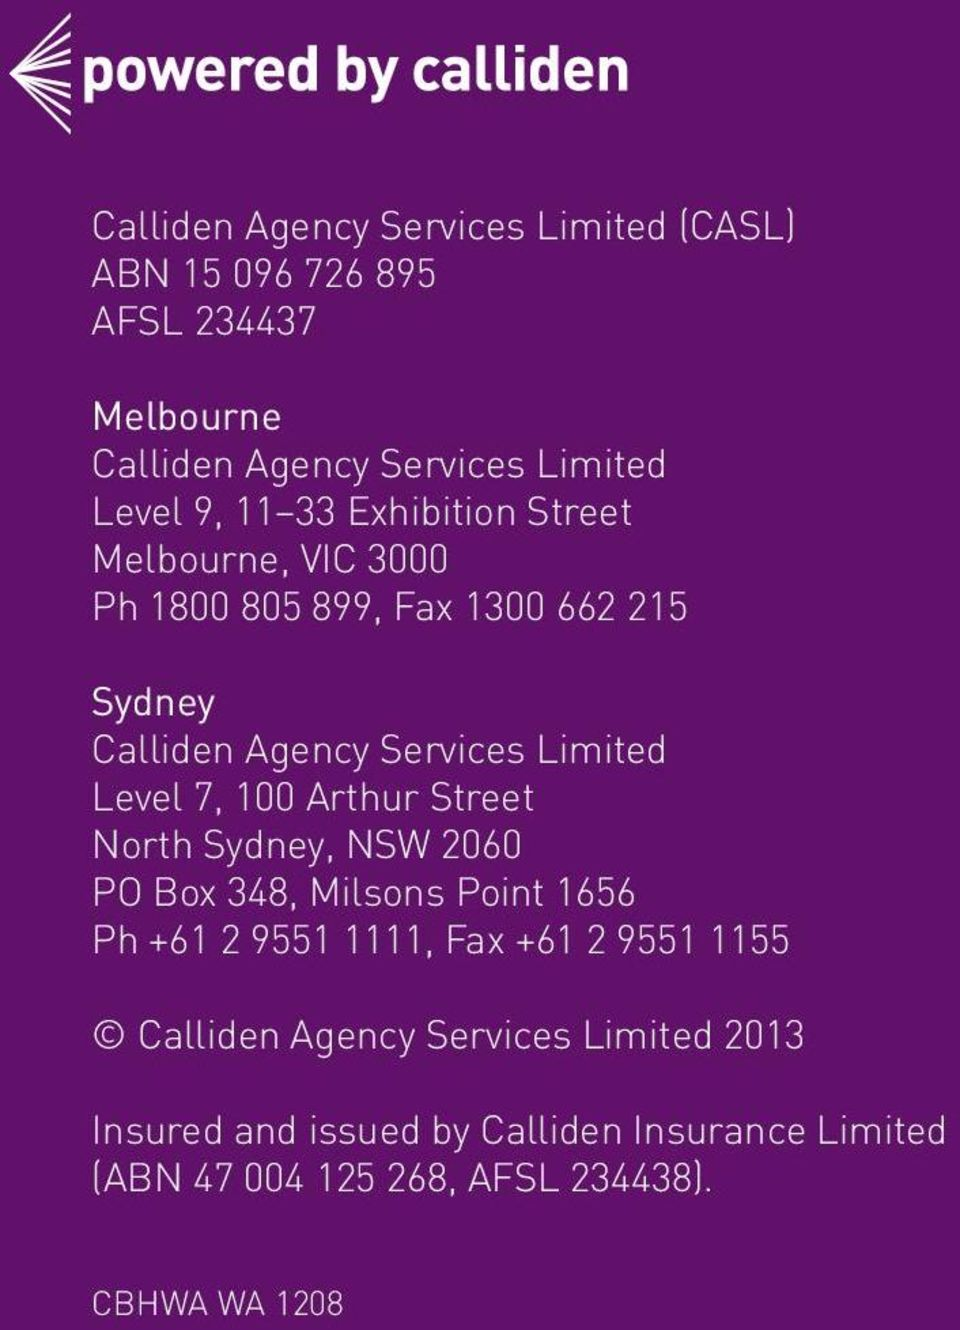 7, 100 Arthur Street North Sydney, NSW 2060 PO Box 348, Milsons Point 1656 Ph +61 2 9551 1111, Fax +61 2 9551 1155 Calliden